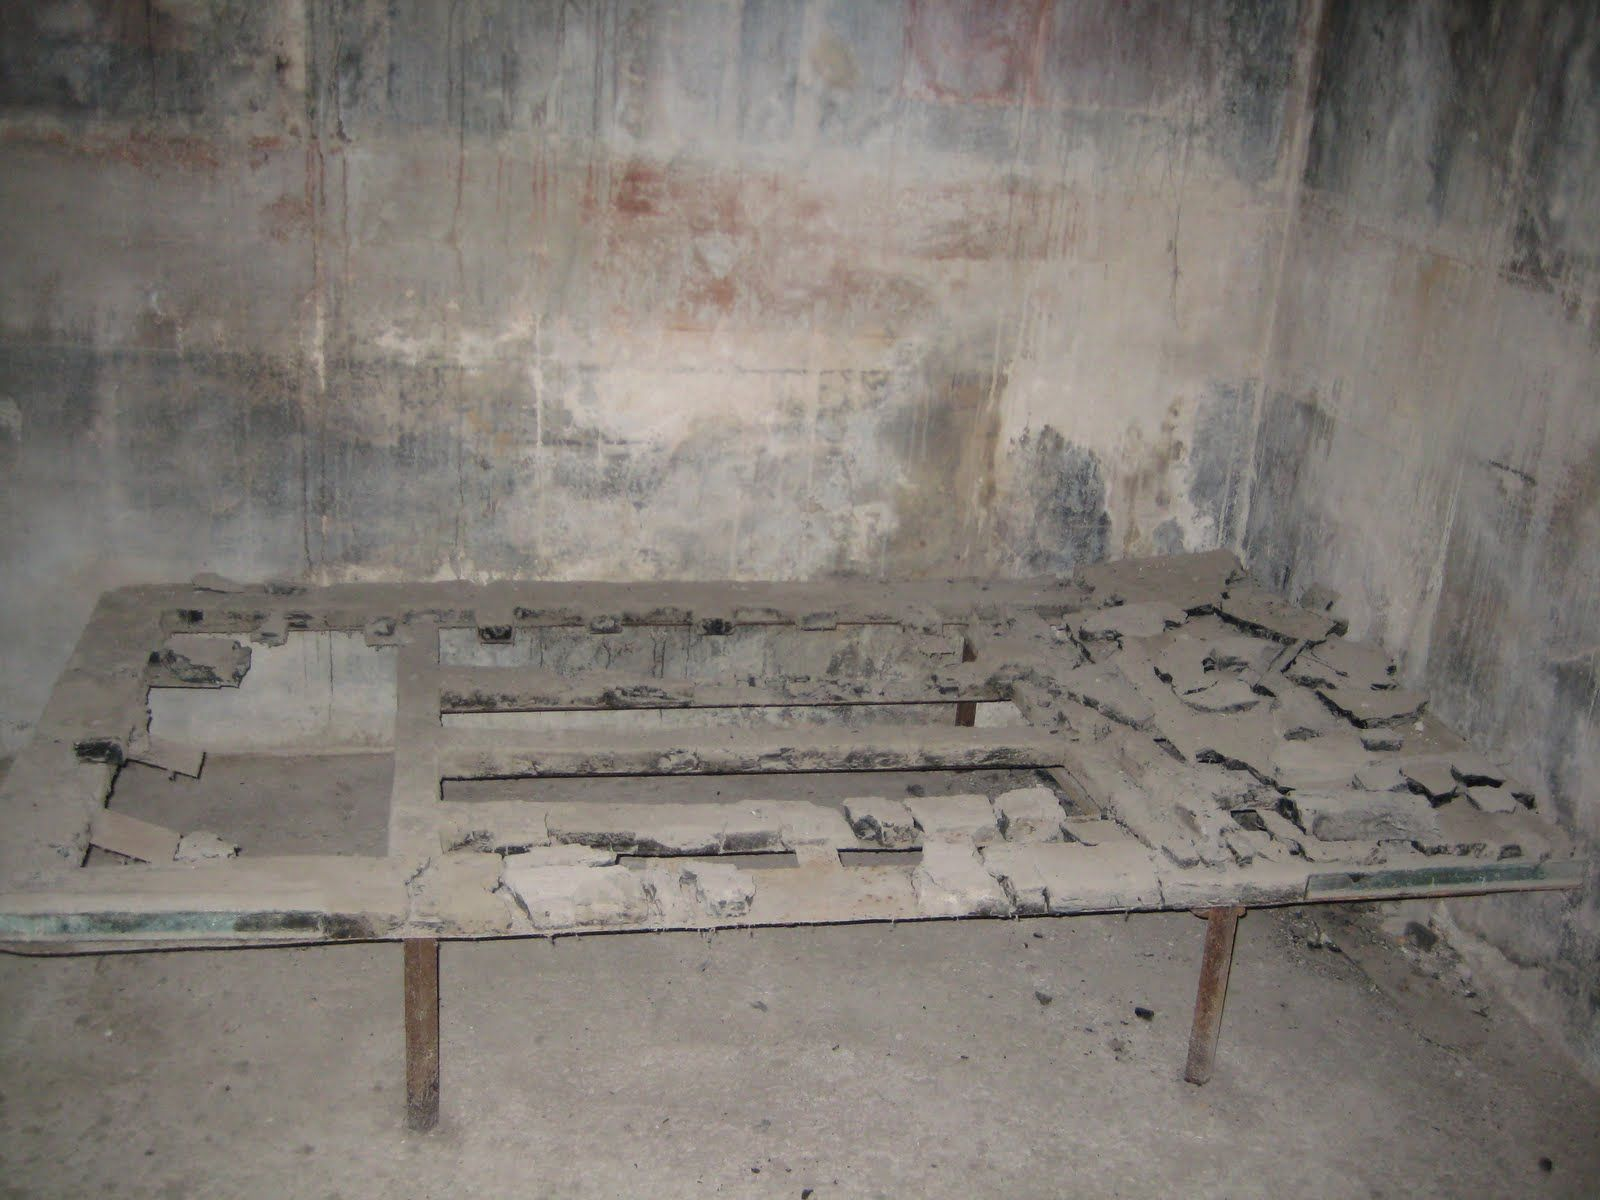 Roman Furniture From Herculaneum Bed Frame Even Fairly Wealthy Romans Mostly Used These Simple Beds